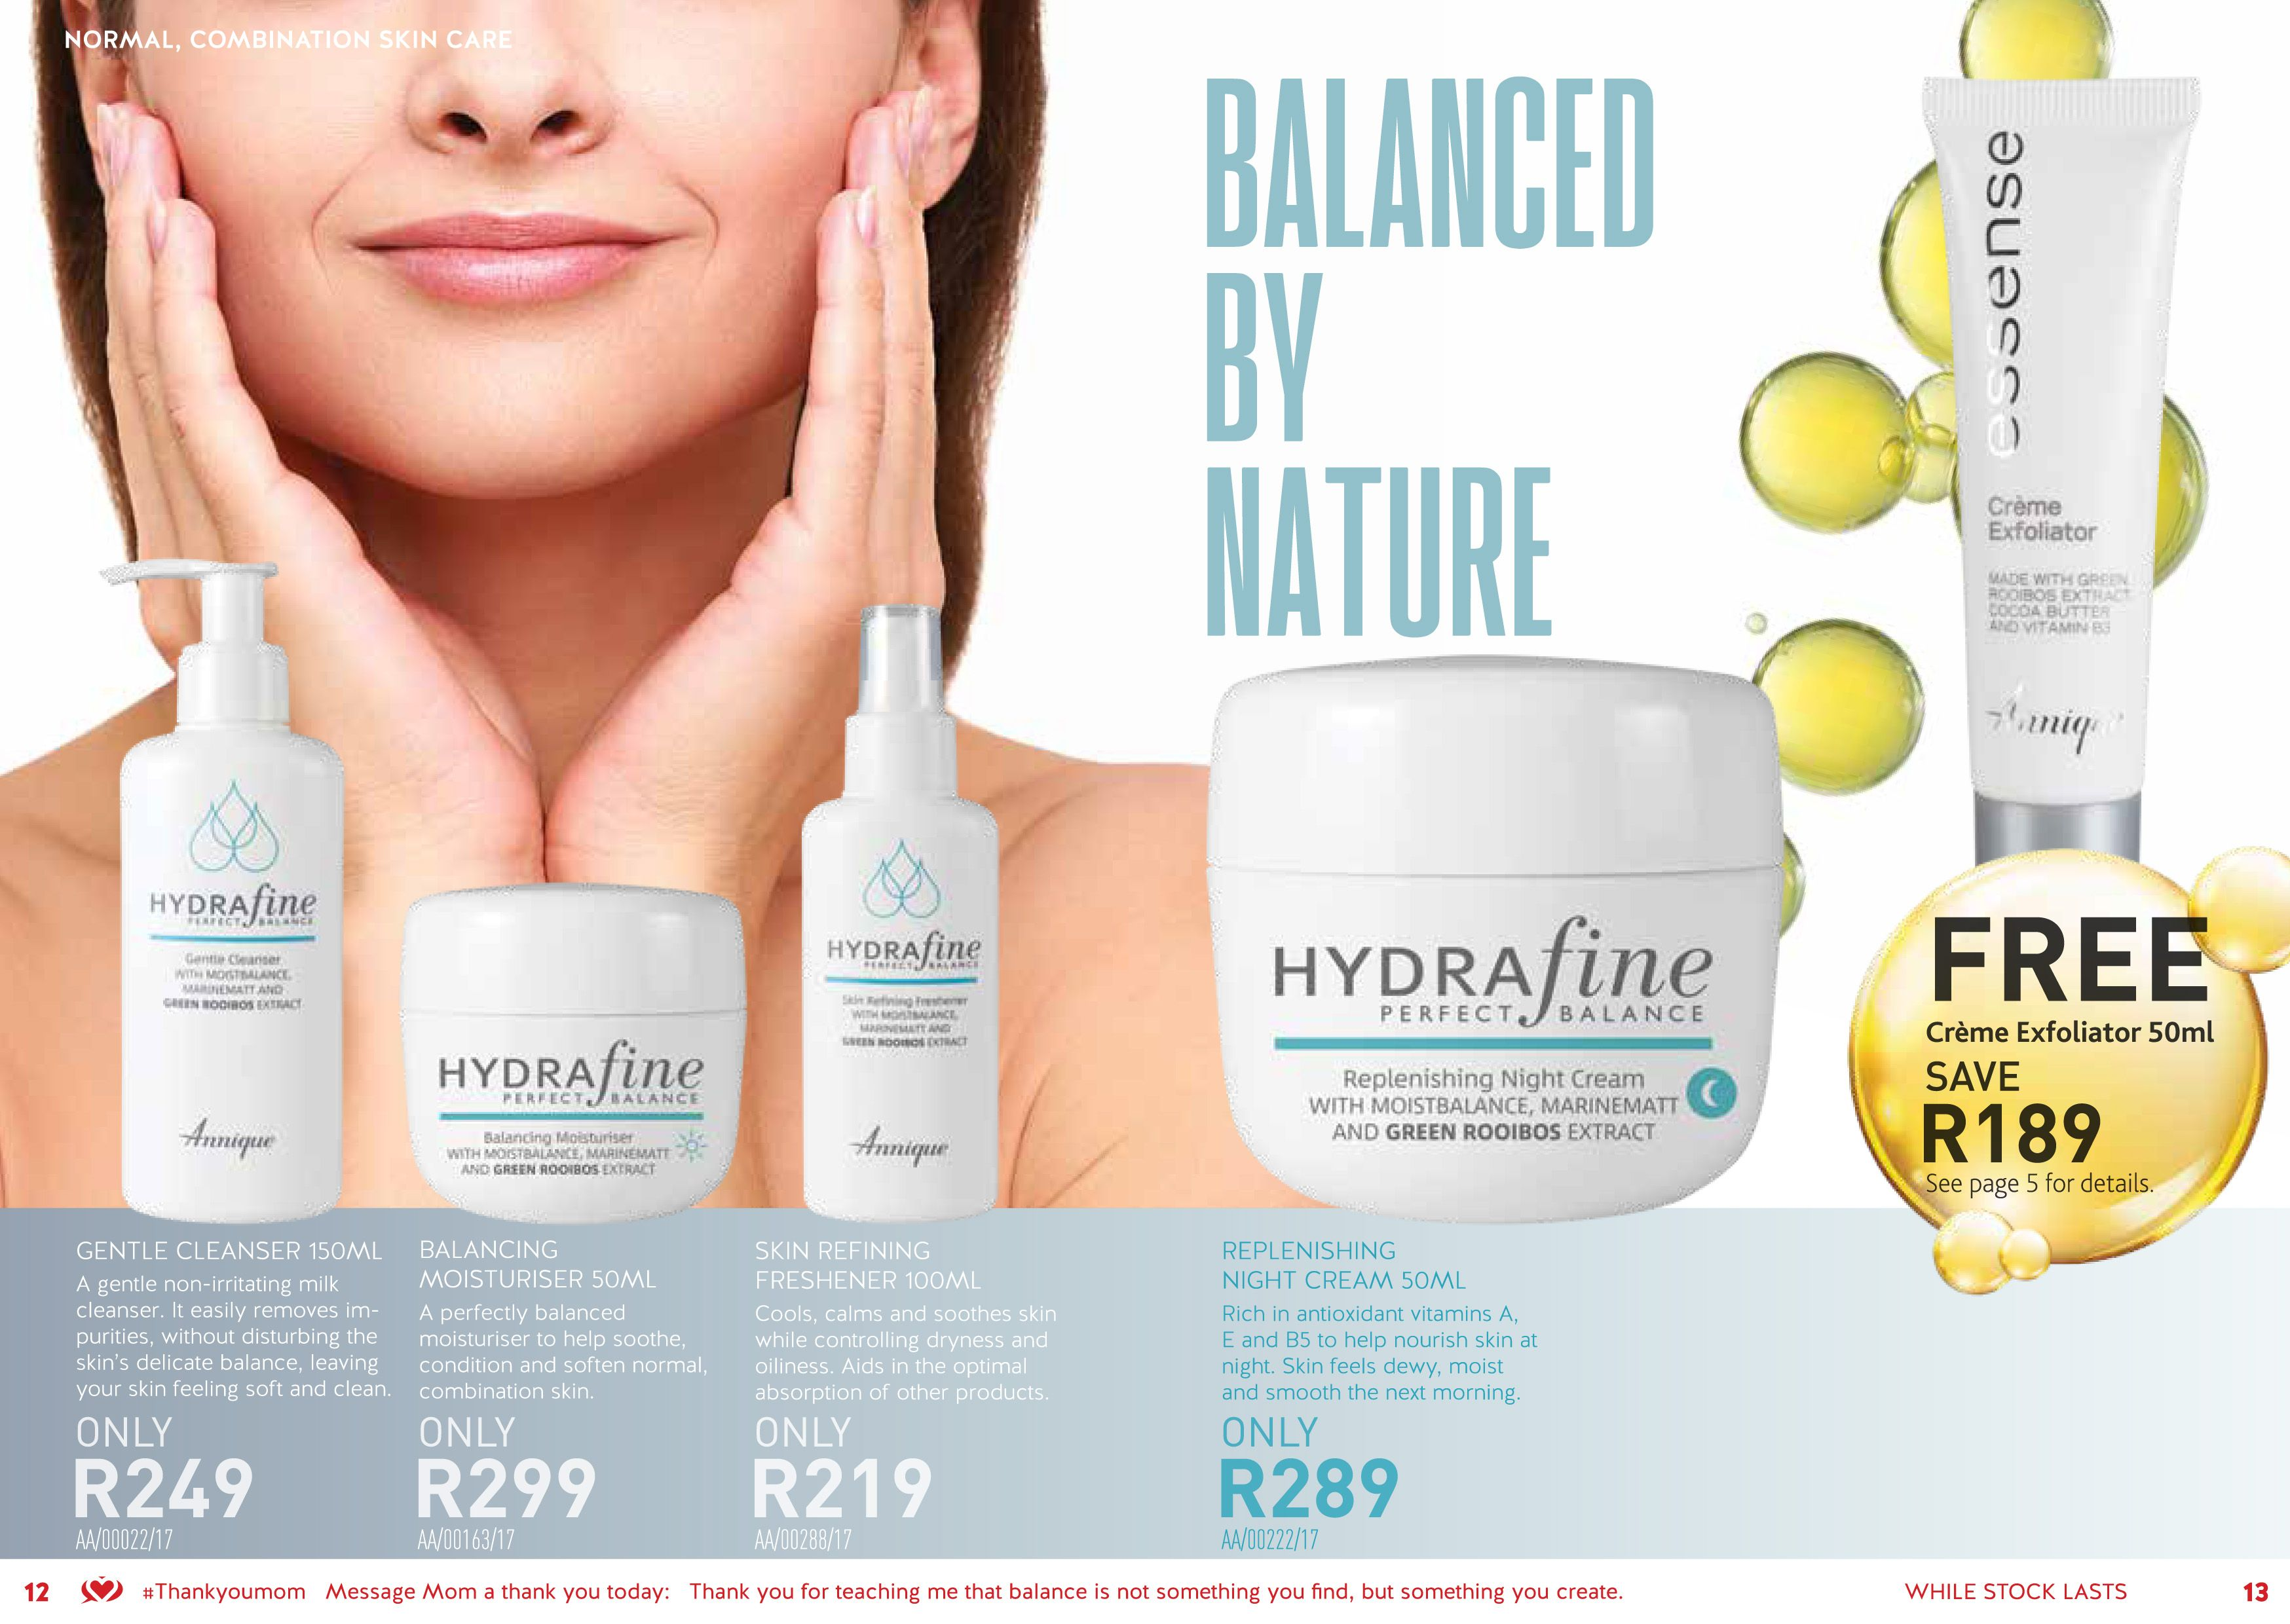 Annique Hydrafine for Normal and Combination Skin